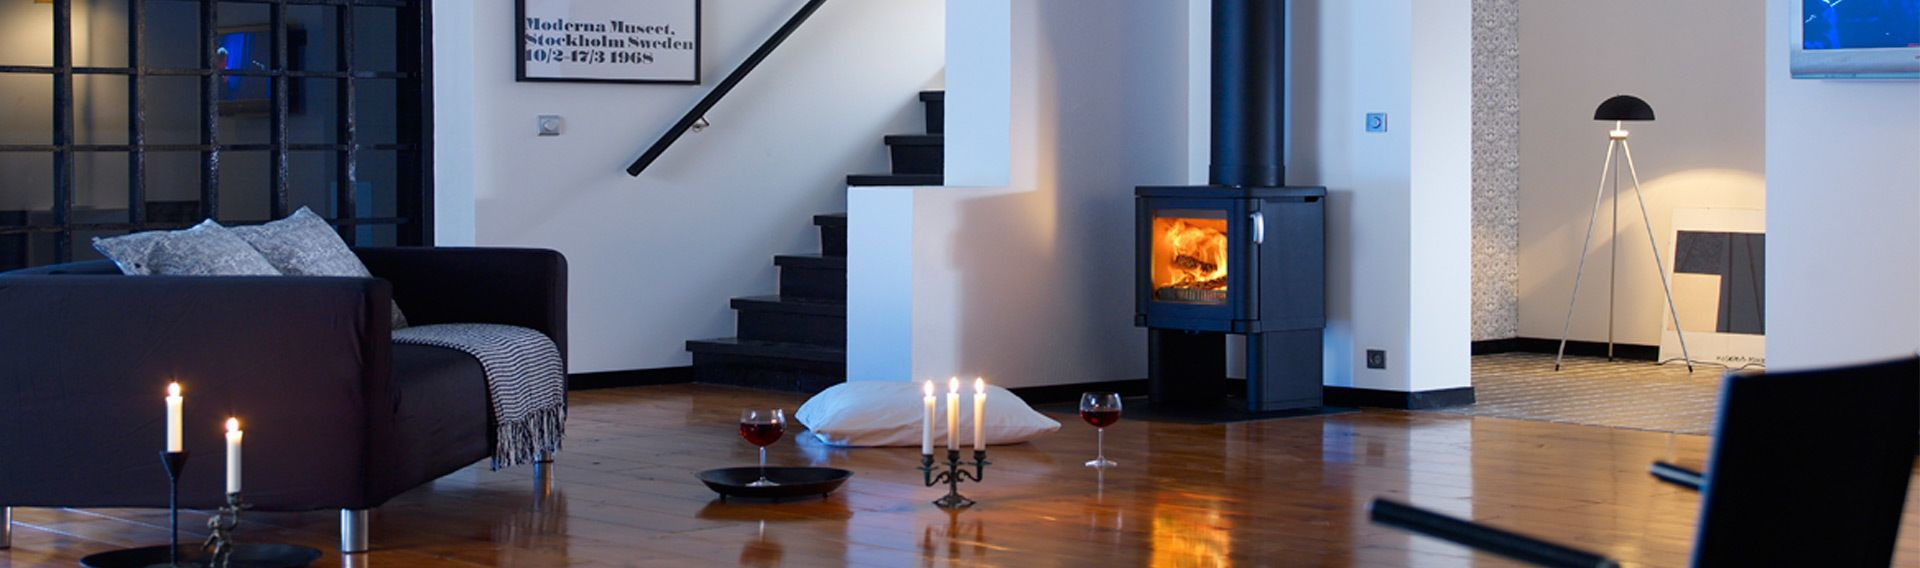 fireplace home slider hagley stoves